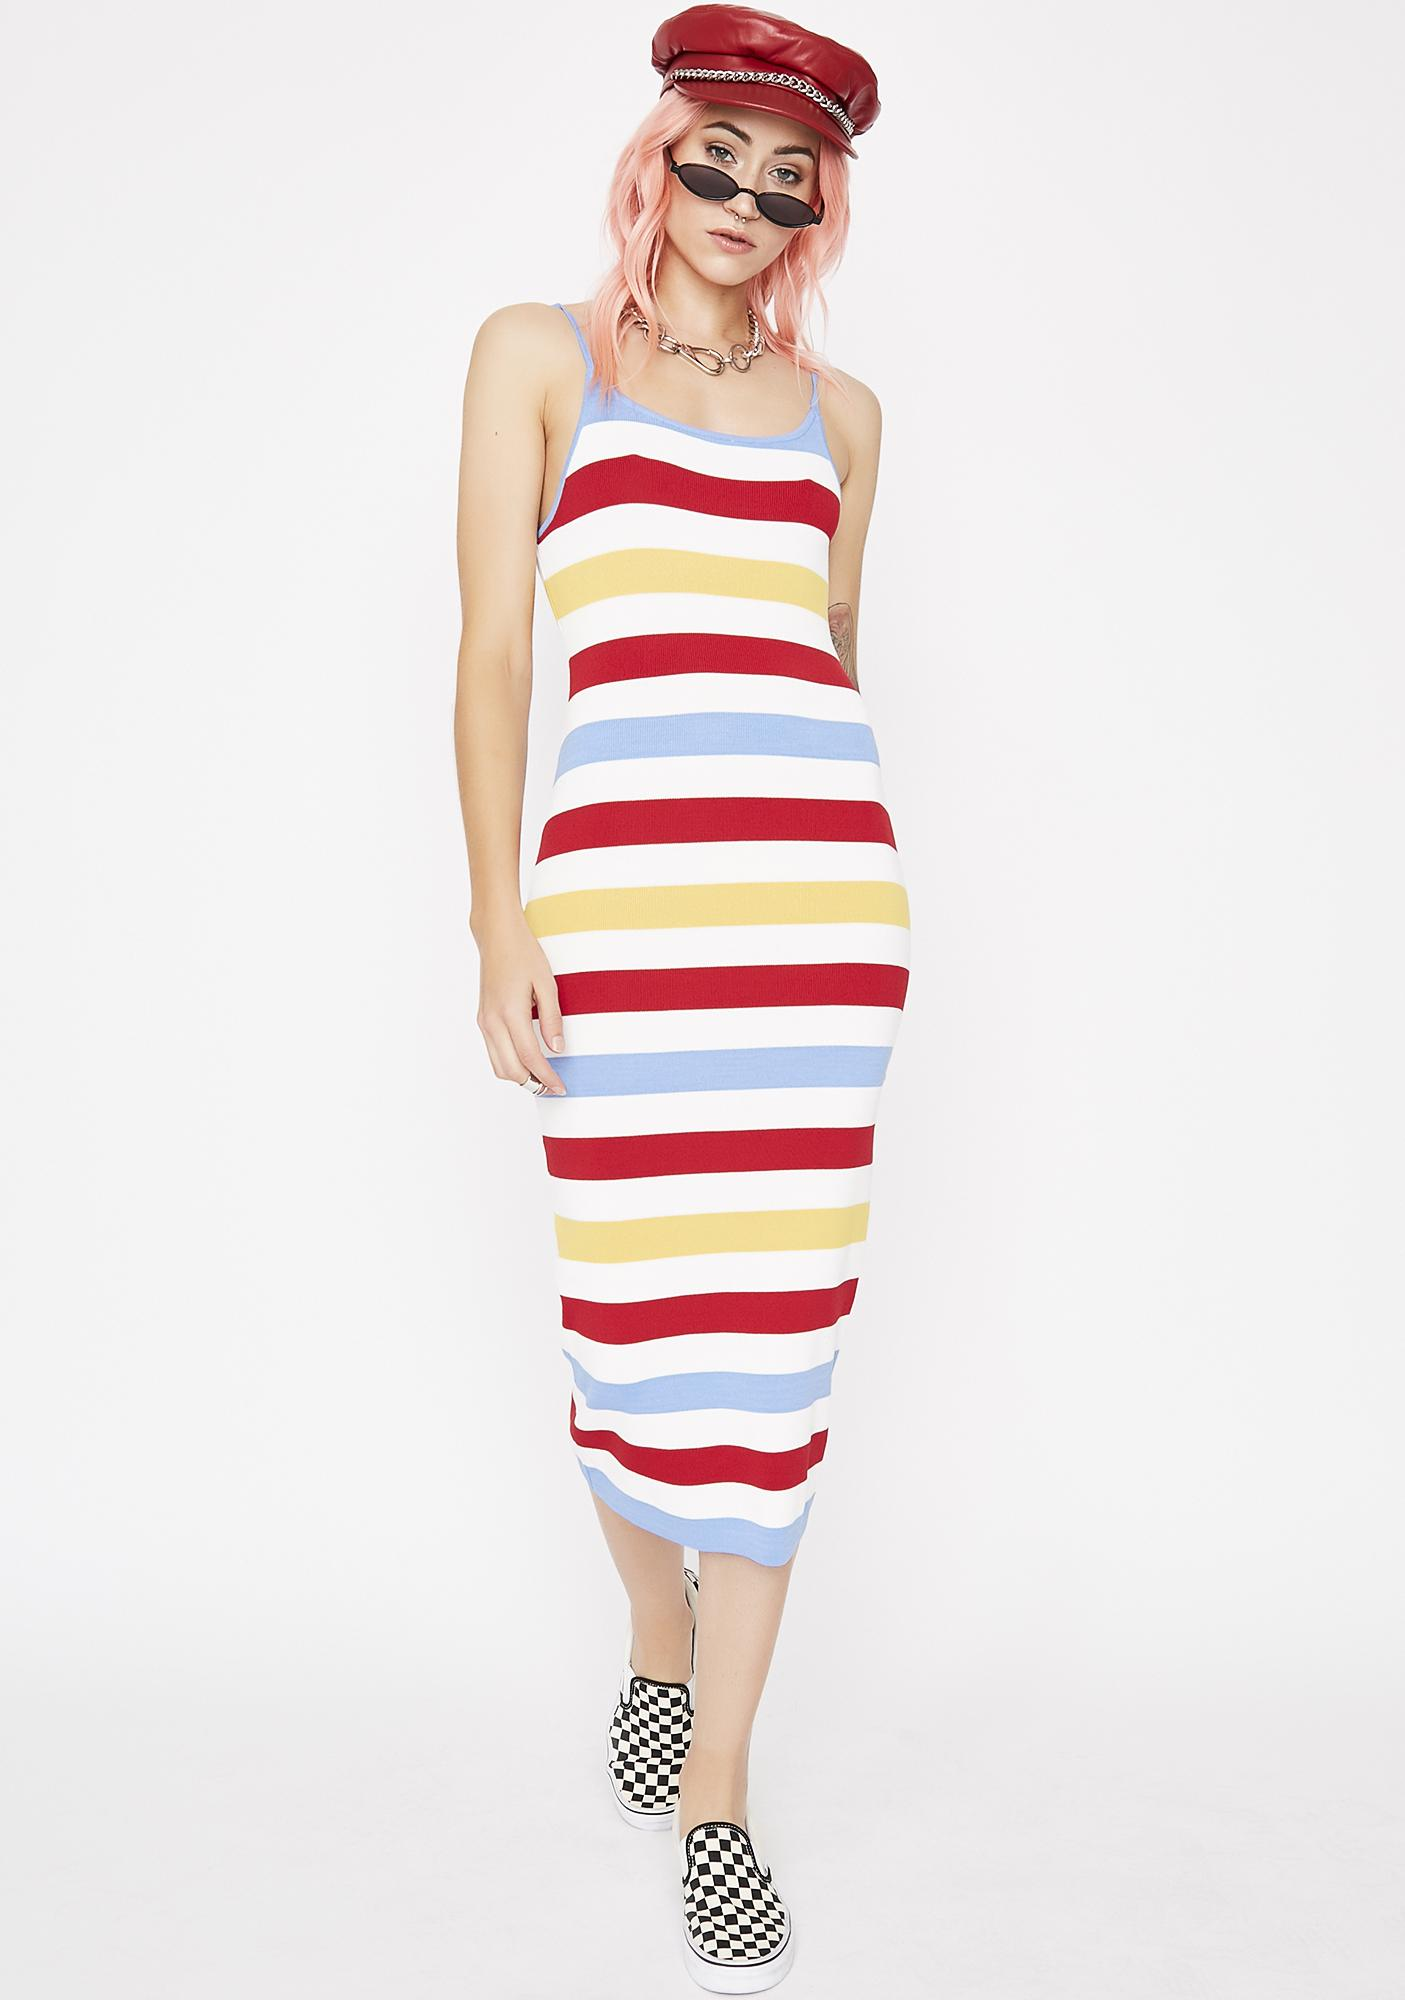 Reel 'Em In Striped Dress